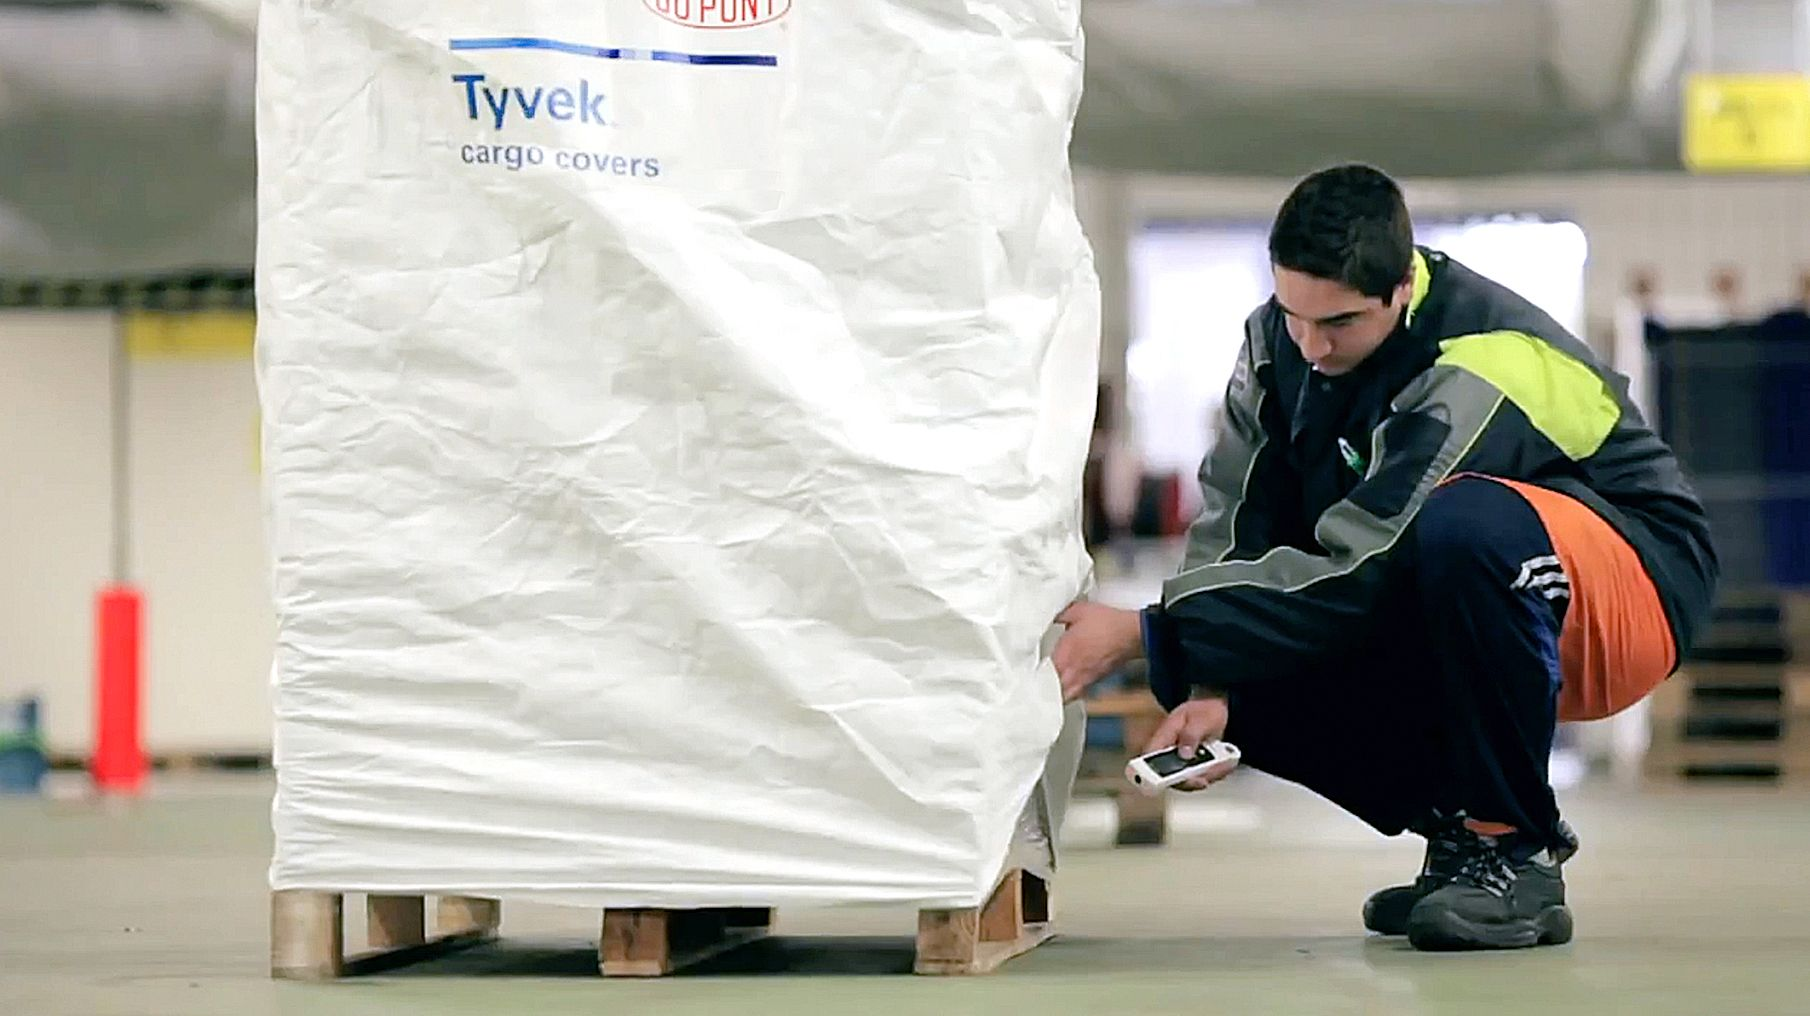 DuPont-Tyvek-CargoCovers-A-1810x1016